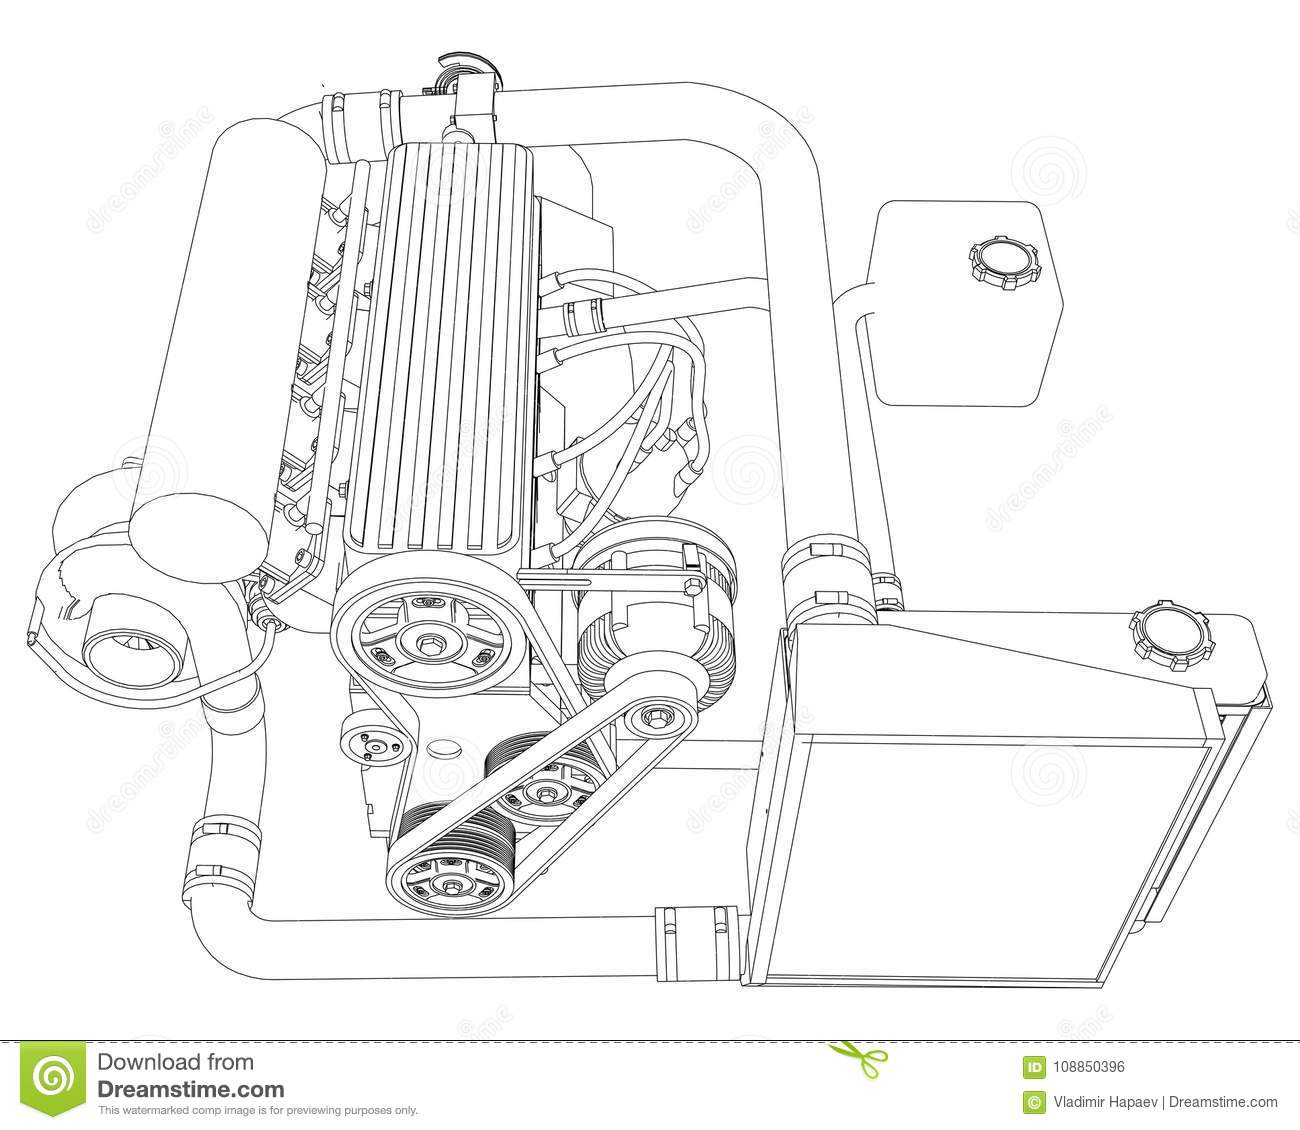 A Turbocharged Four Cylinder High Performance Engine For